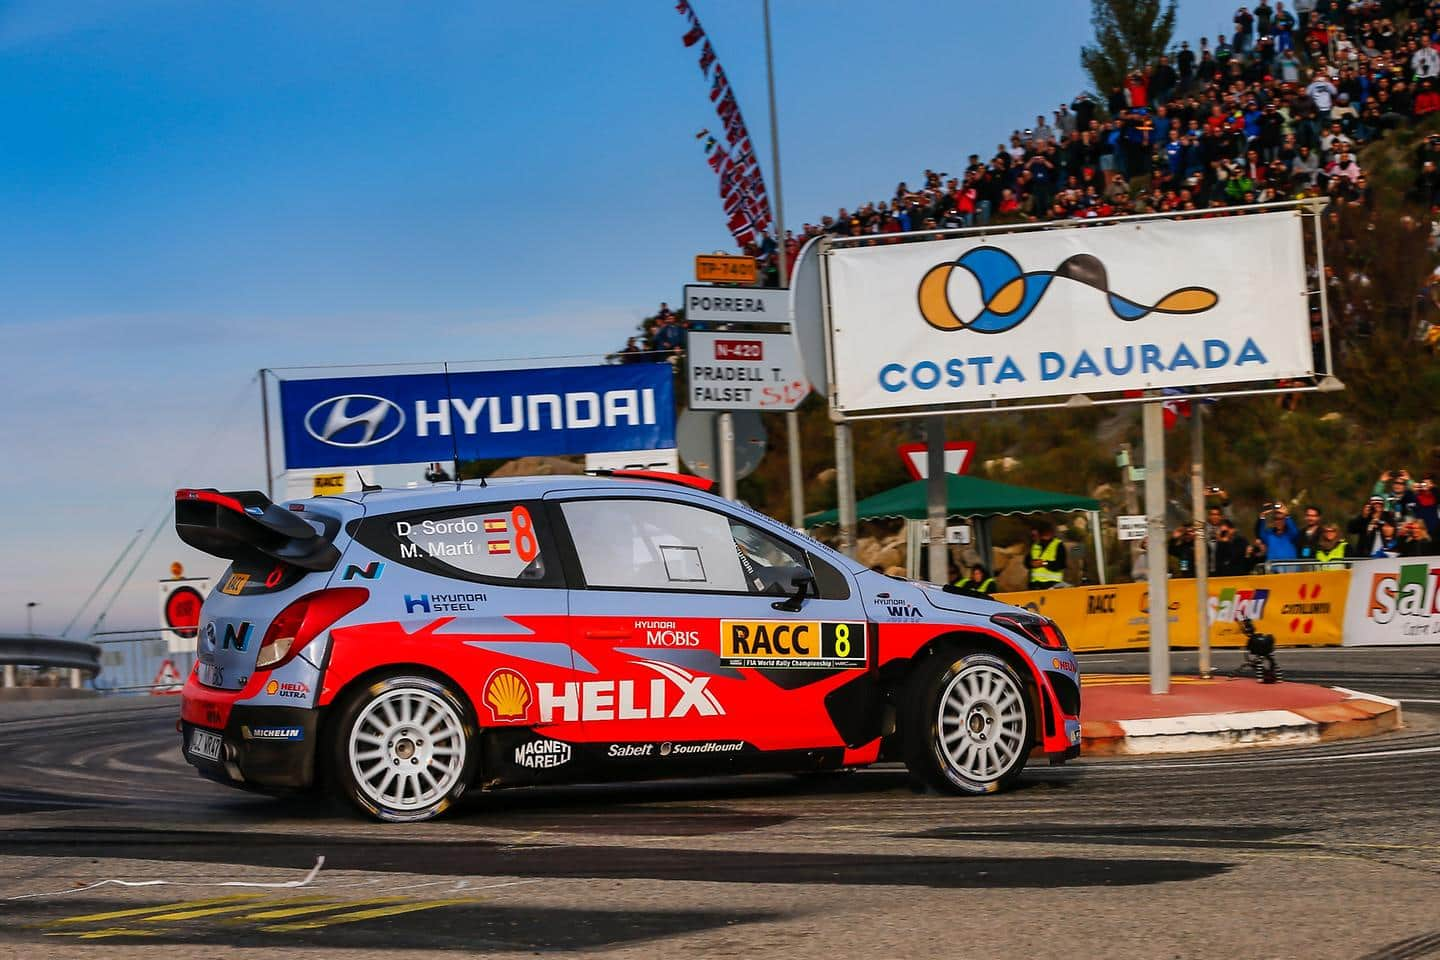 Fantastic Spanish podium for Hyundai Motorsport as Dani Sordo takes third place